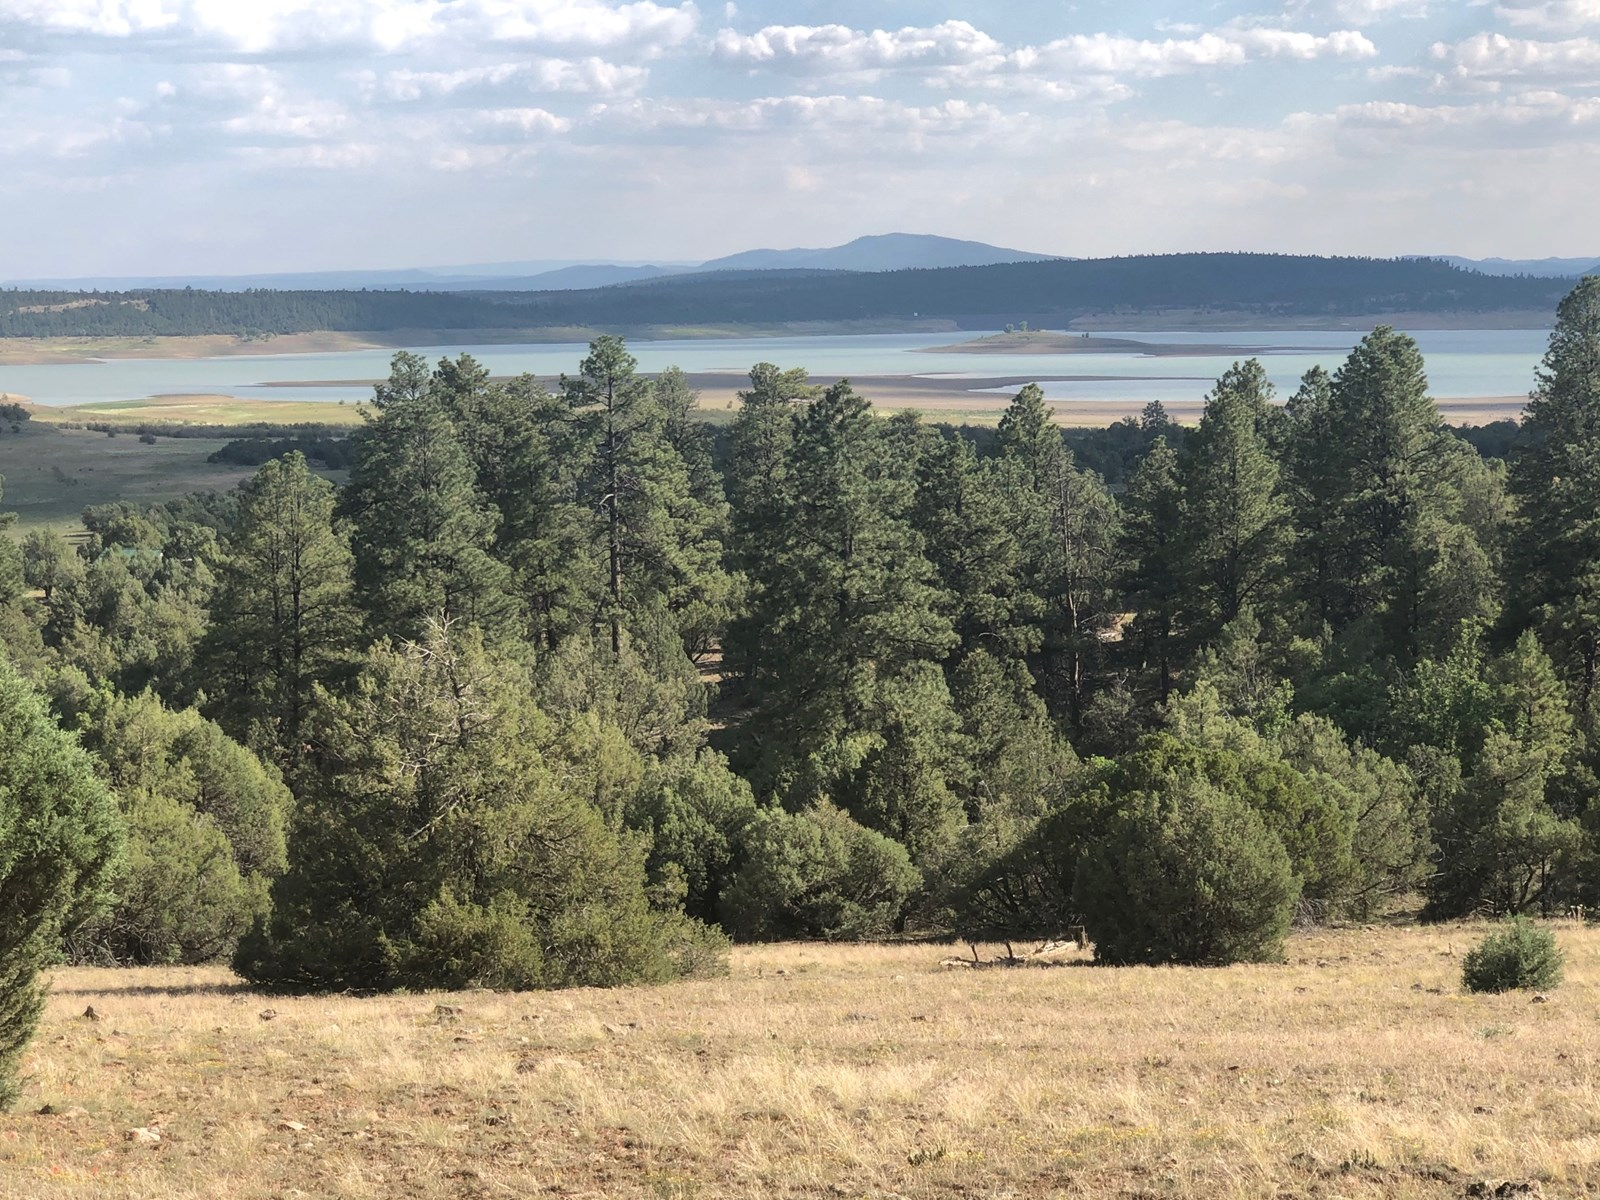 Heron Lake Property for Sale with Lake View near Chama NM